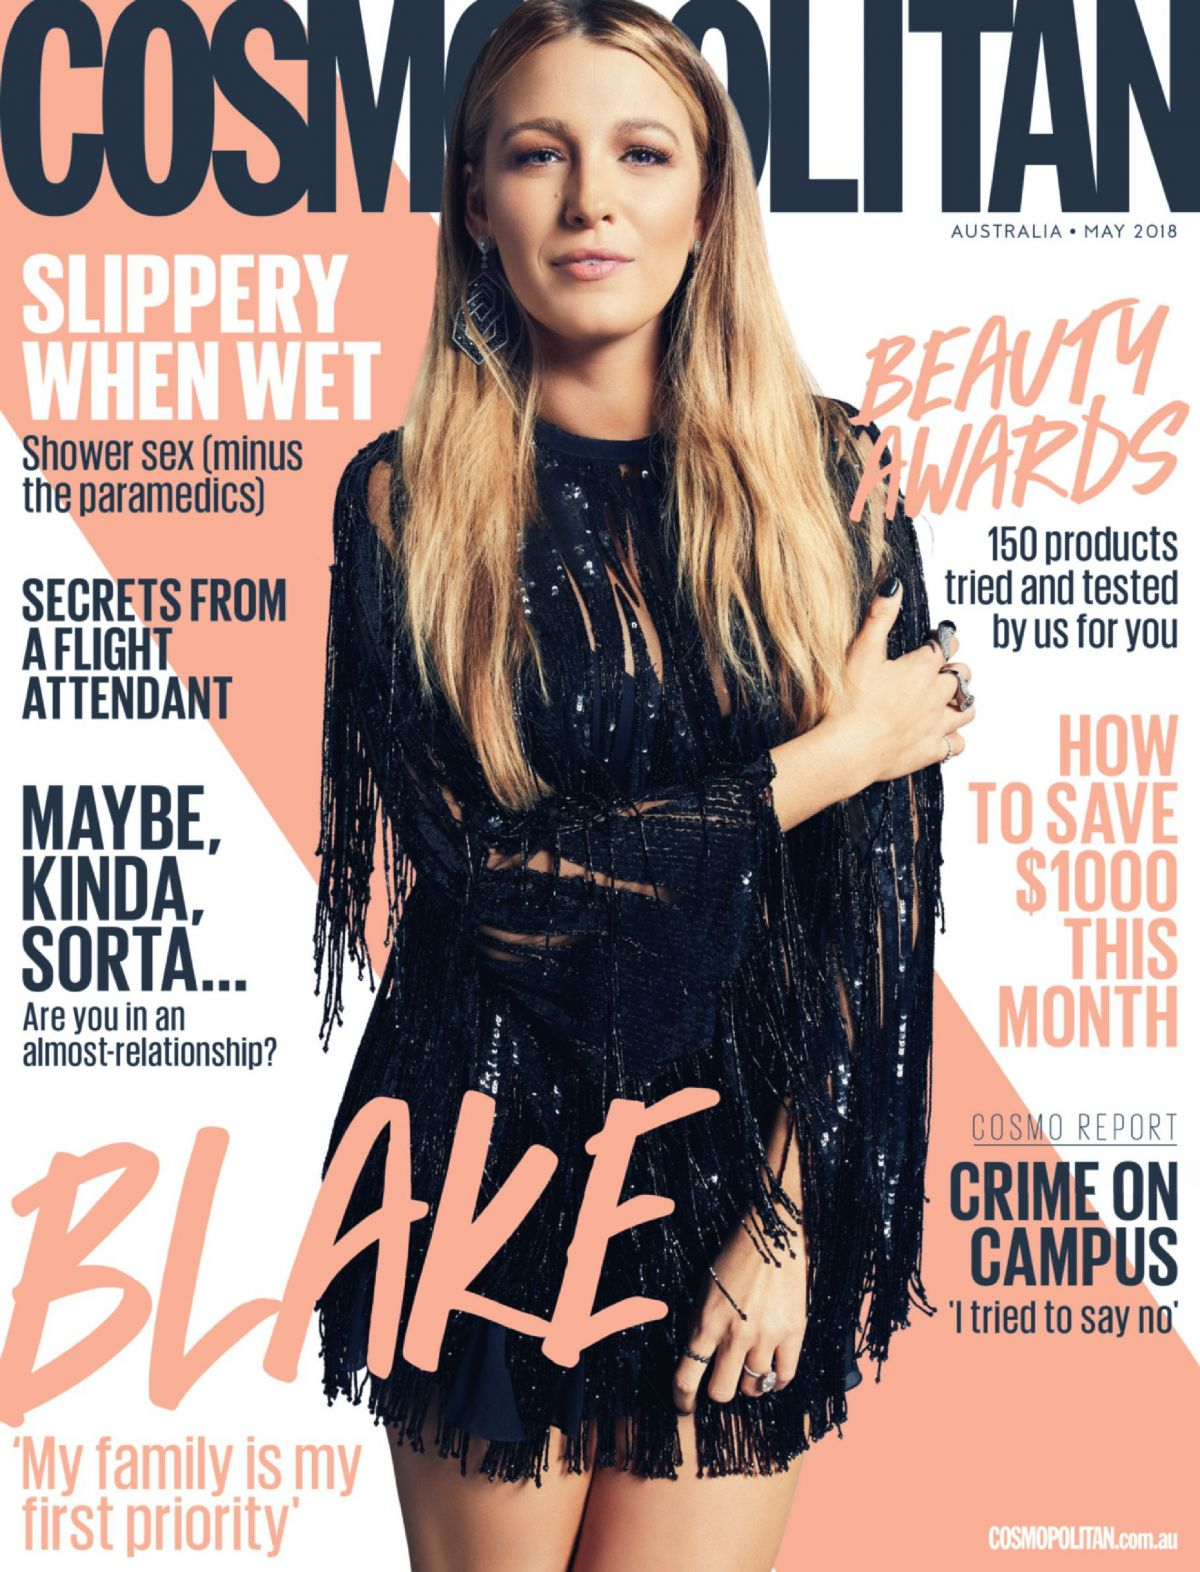 BLAKE LIVELY in Cosmopolitan Magazine, Australia May 2018